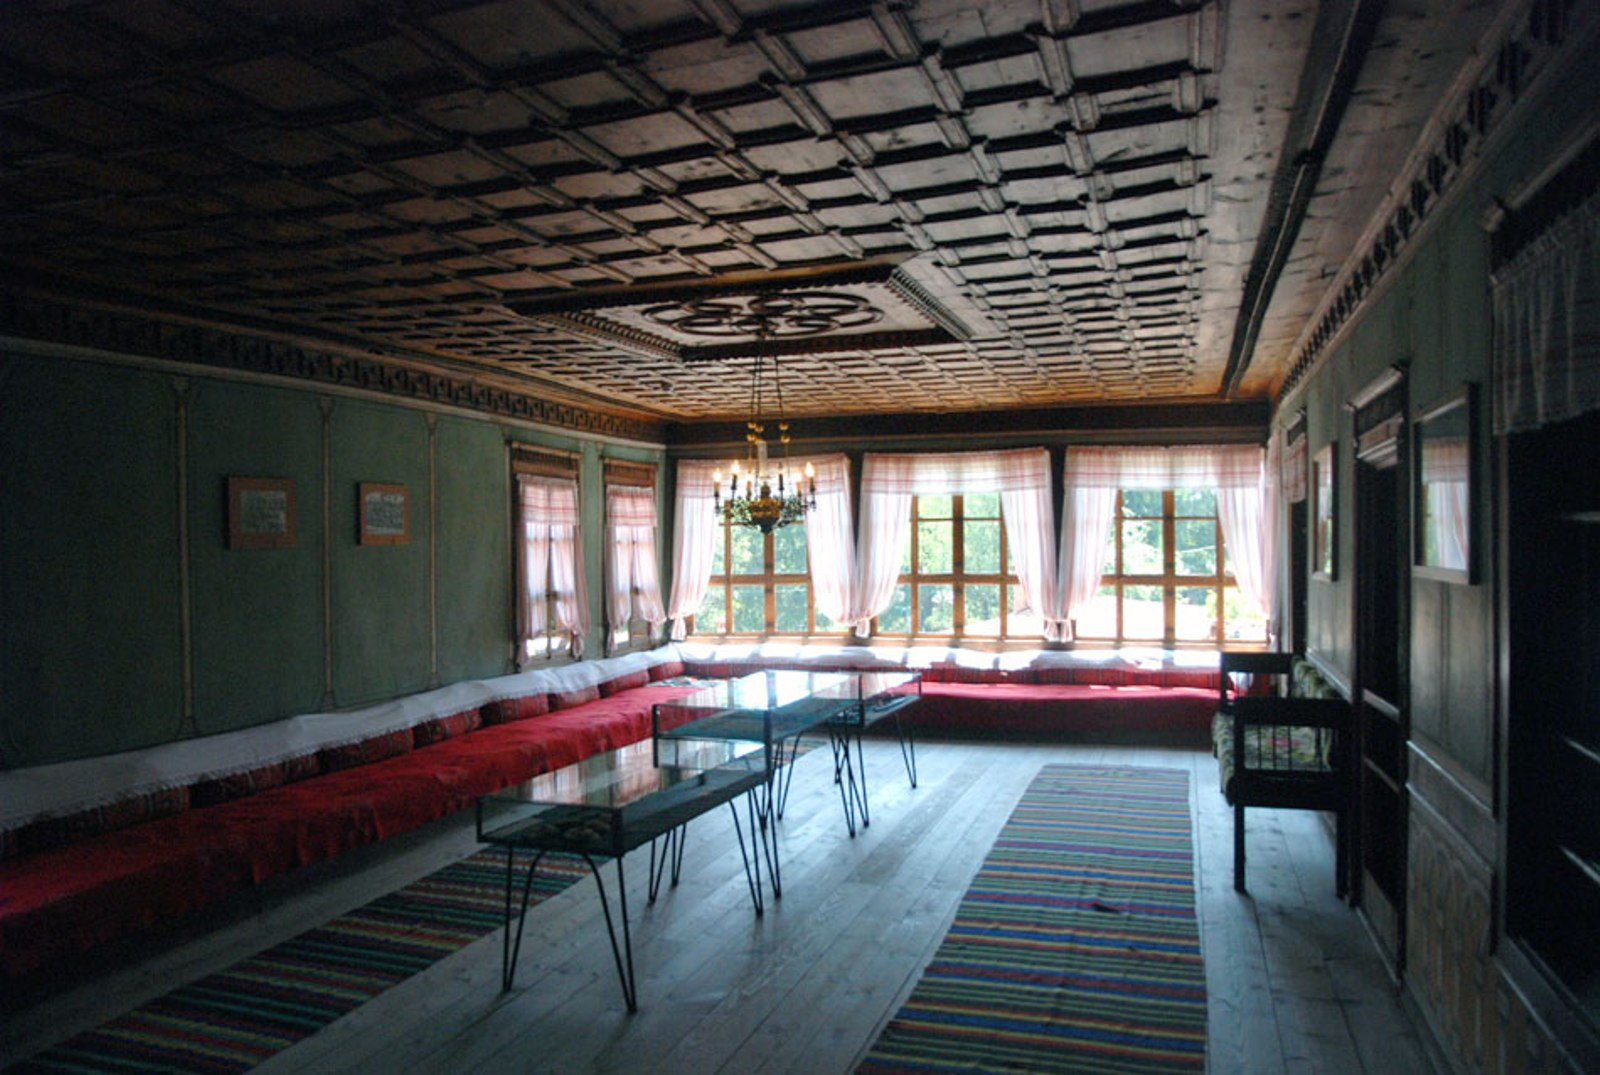 Koprivshtitsa - Attraction Oslekova House - Picture 3